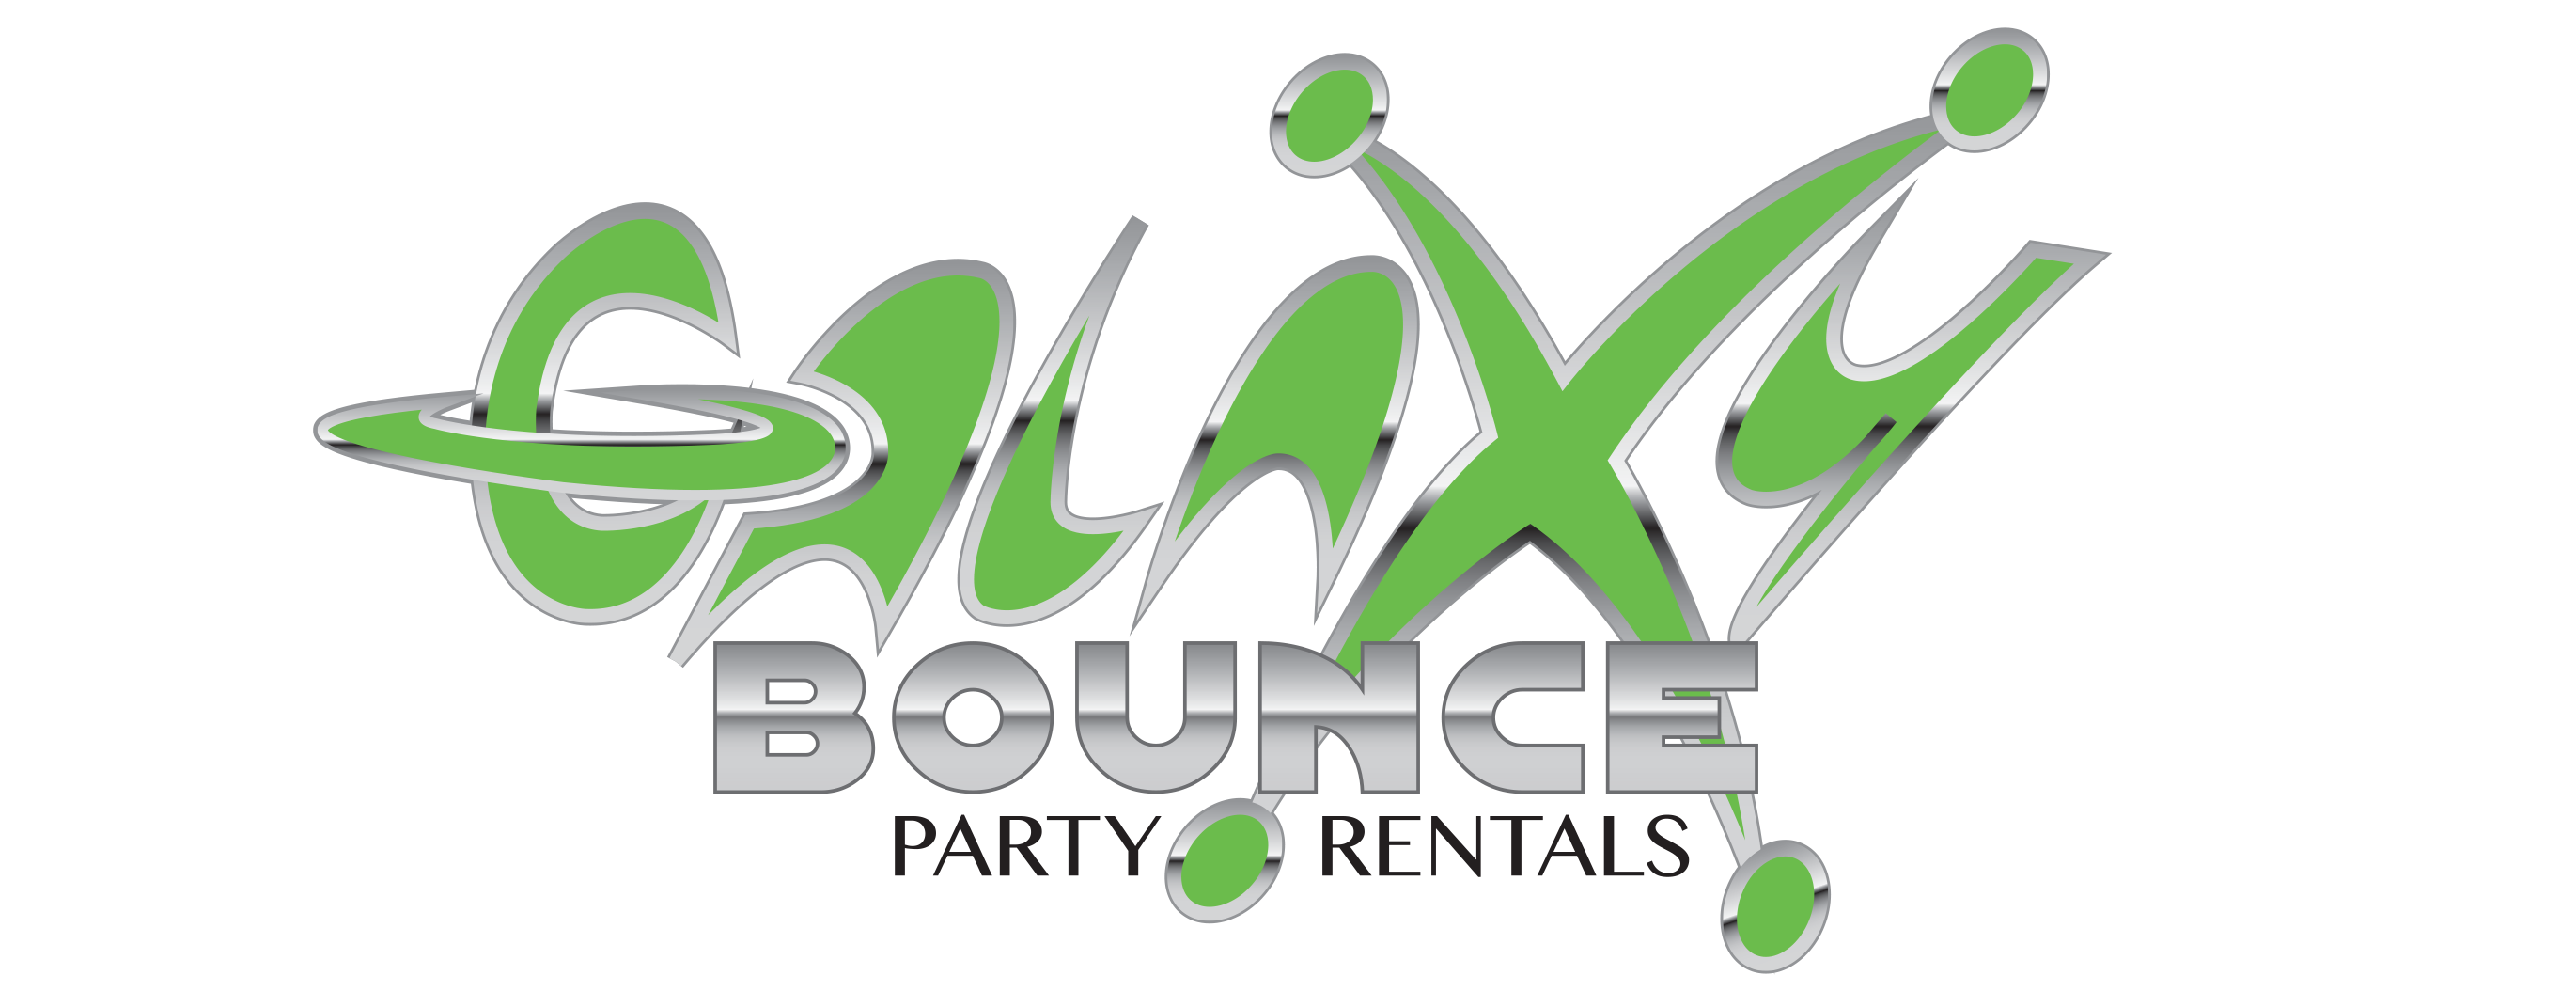 Galaxy Bounce Party Rentals